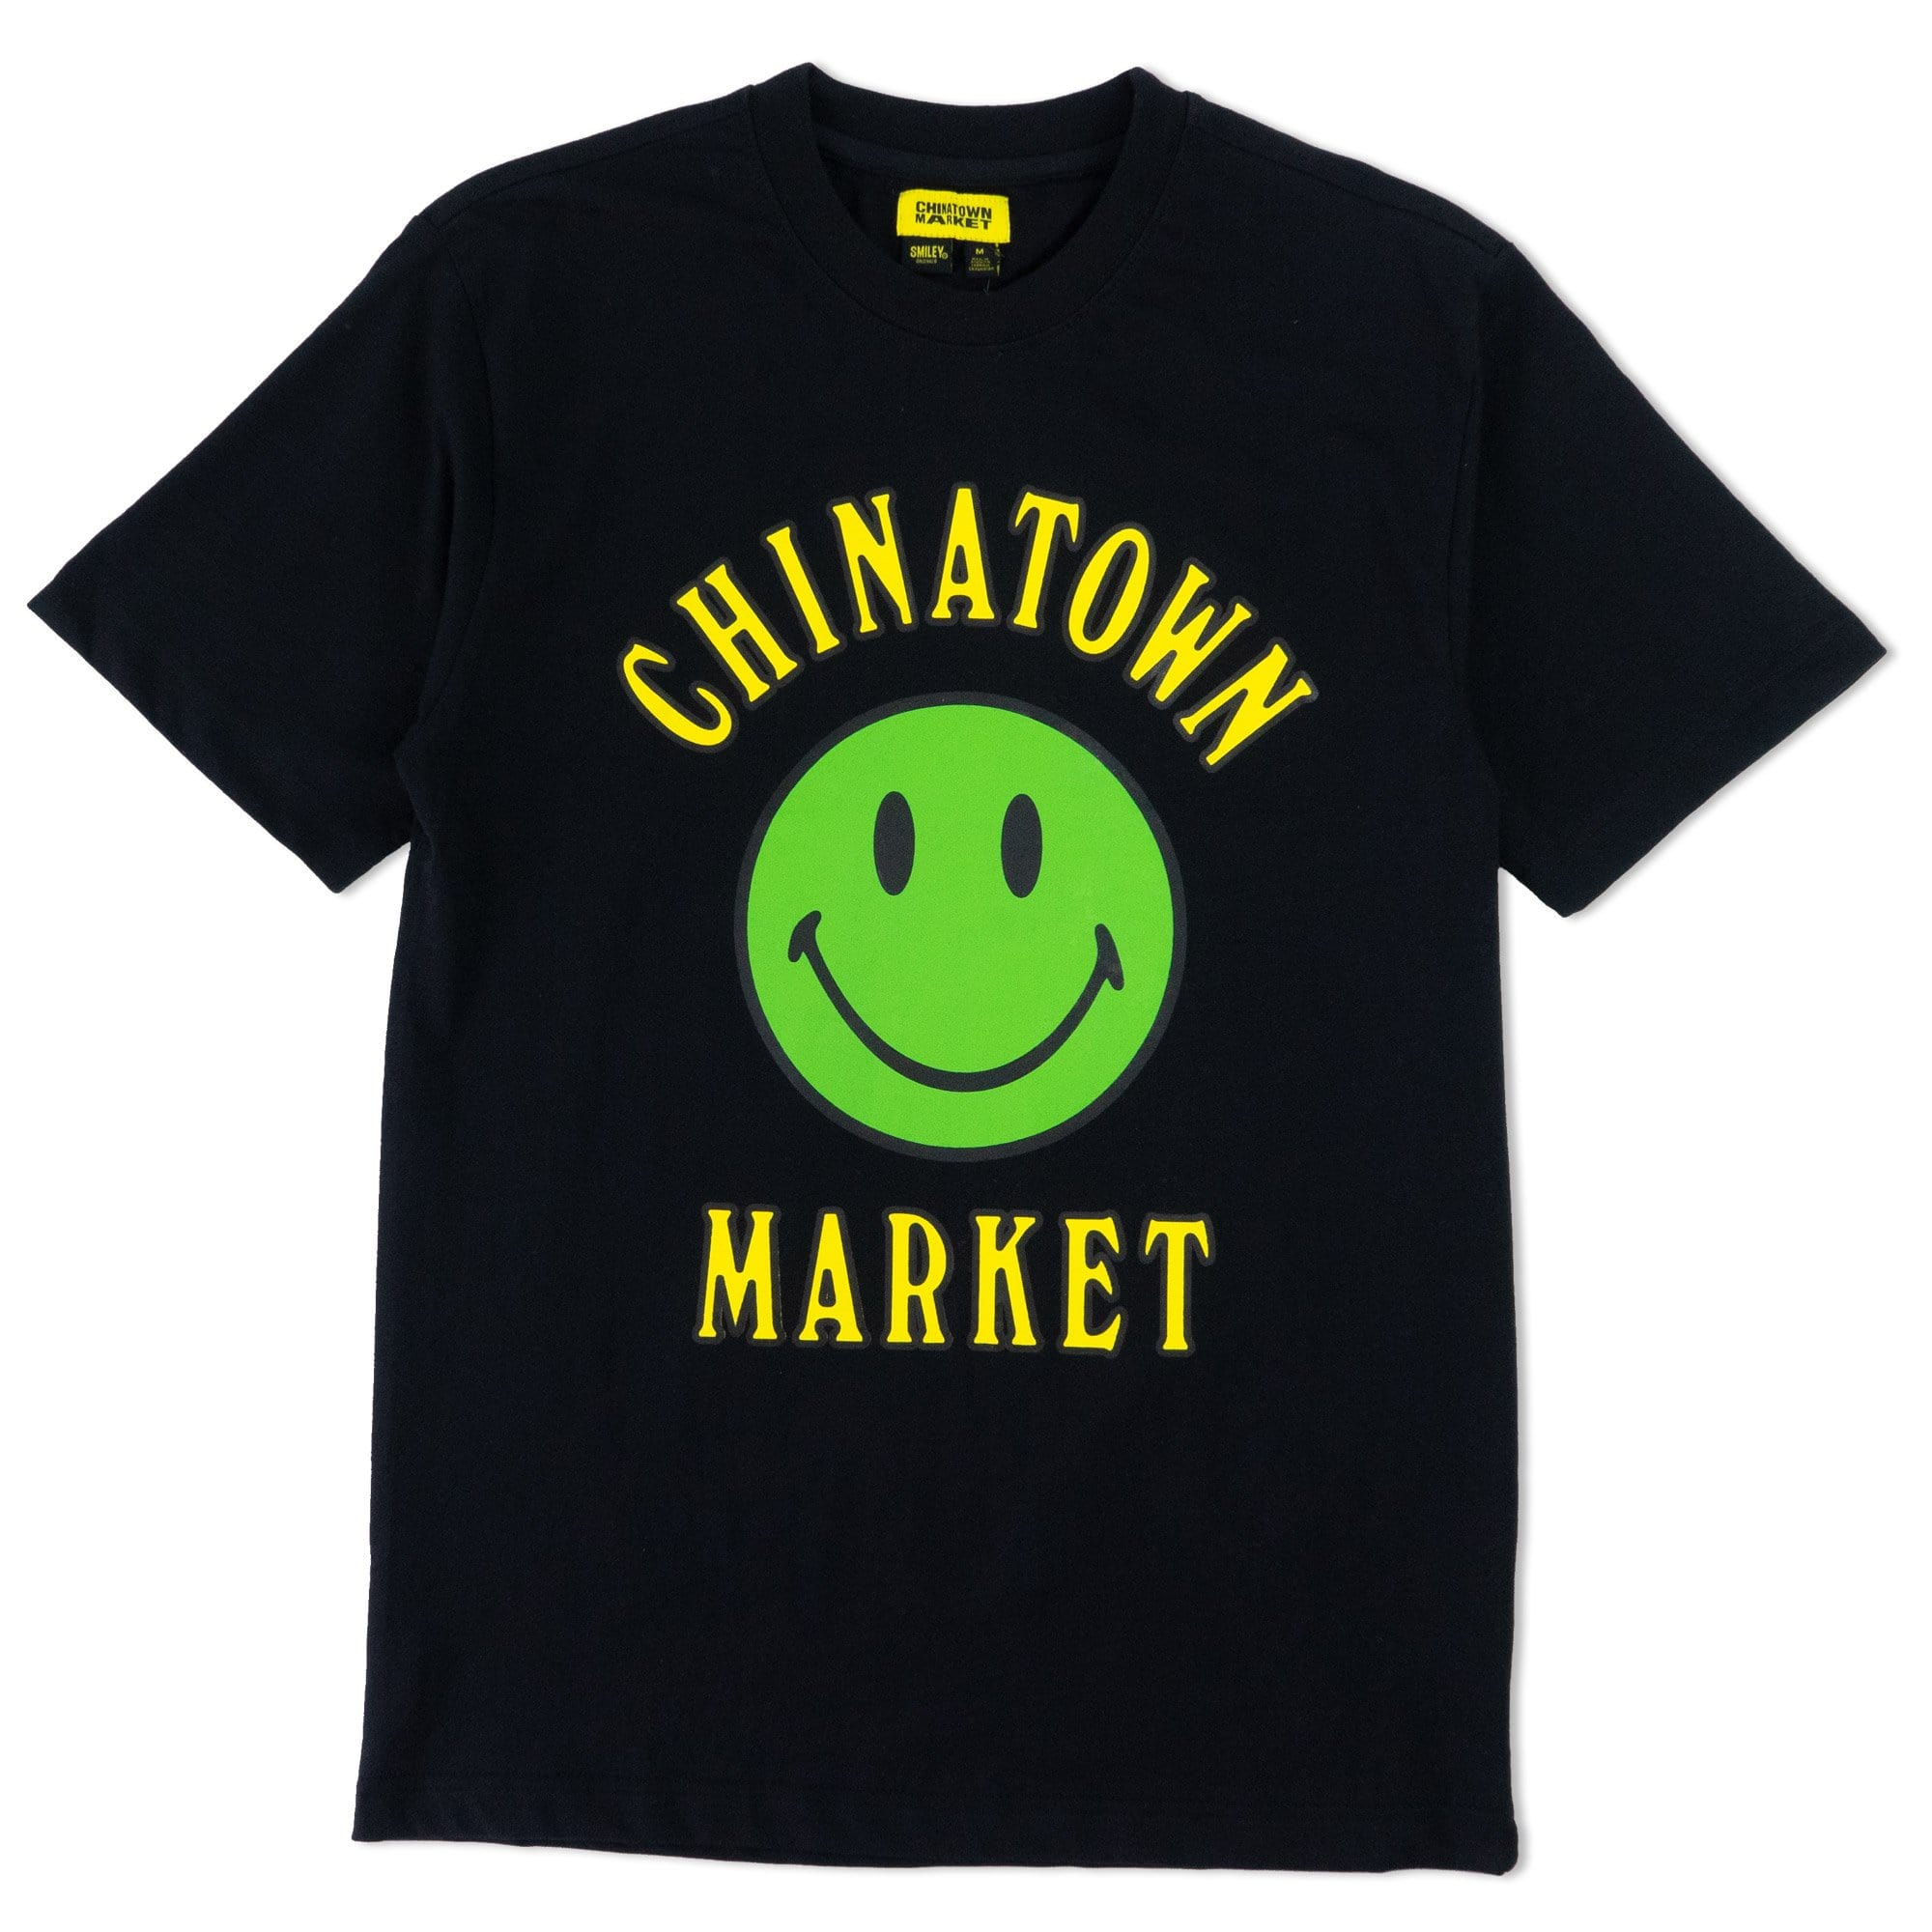 China Town Market T-Shirts S Smiley Multi Tee